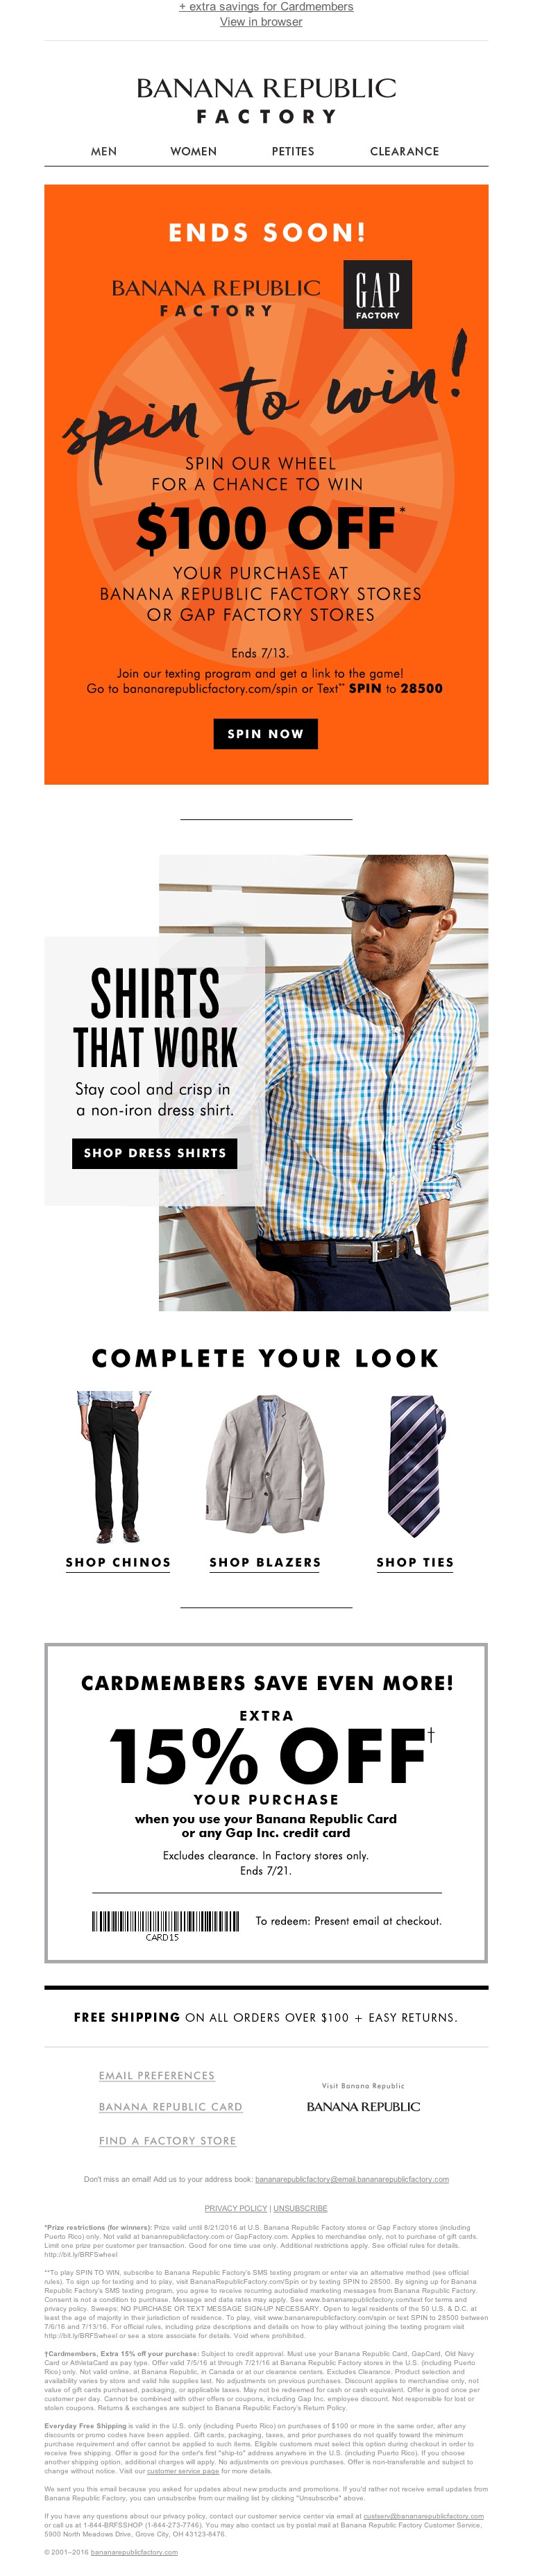 Banana Republic Factory Store - Shirts that work (so you don't have to)